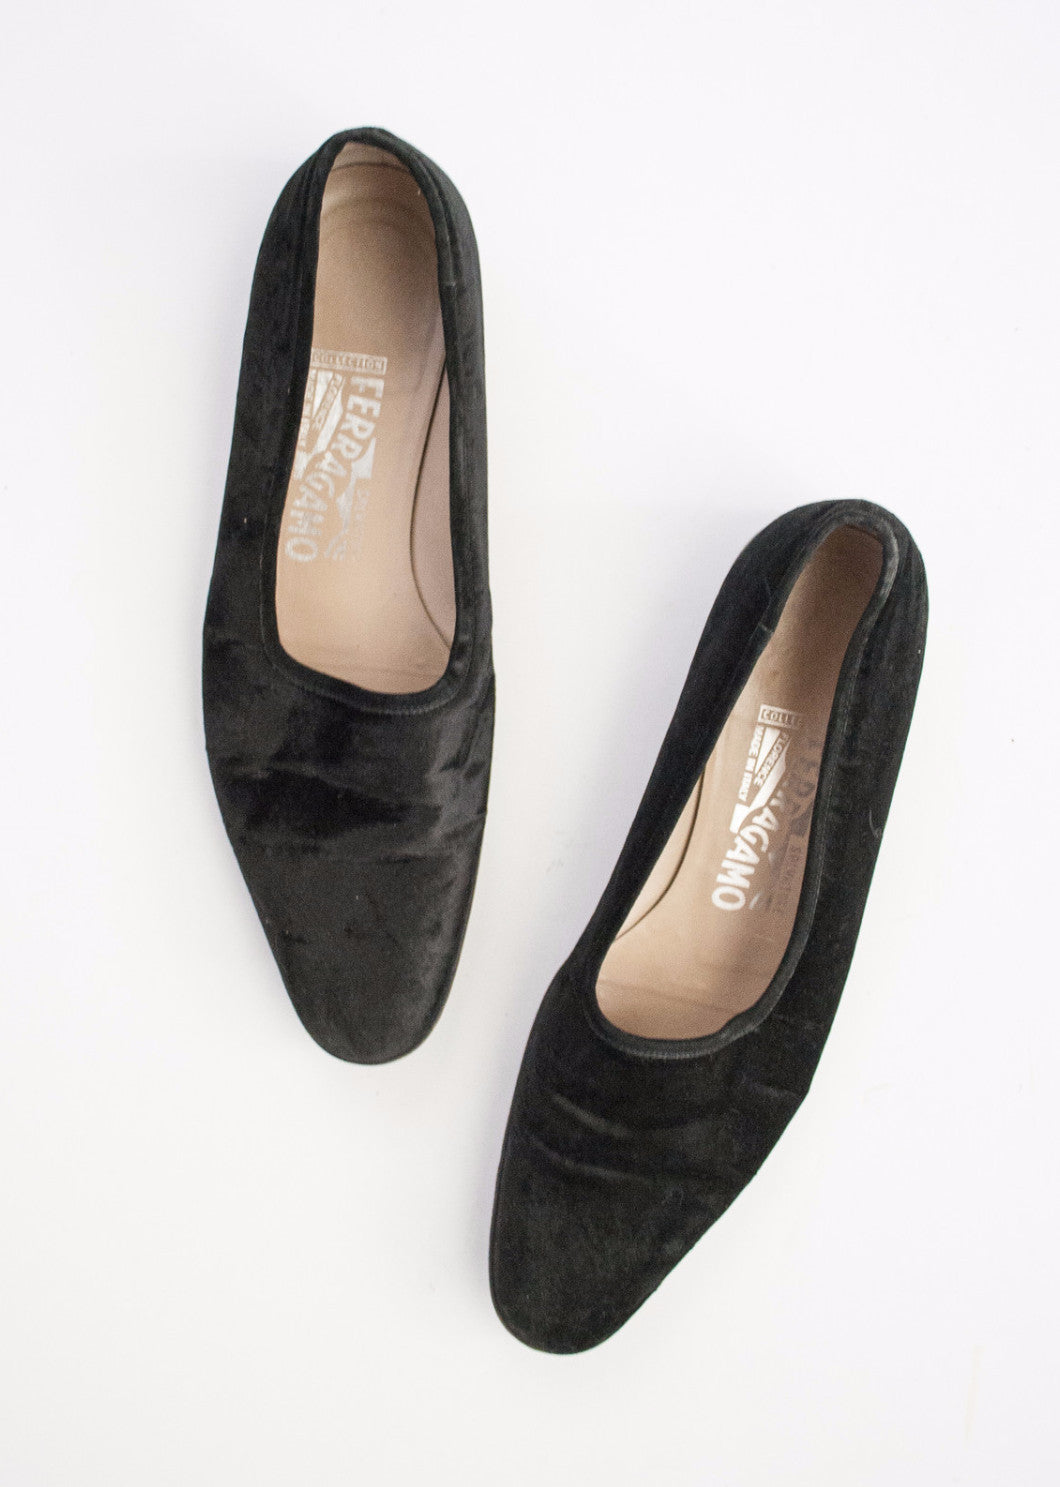 Ferragamo Velour Loafers | 8.5